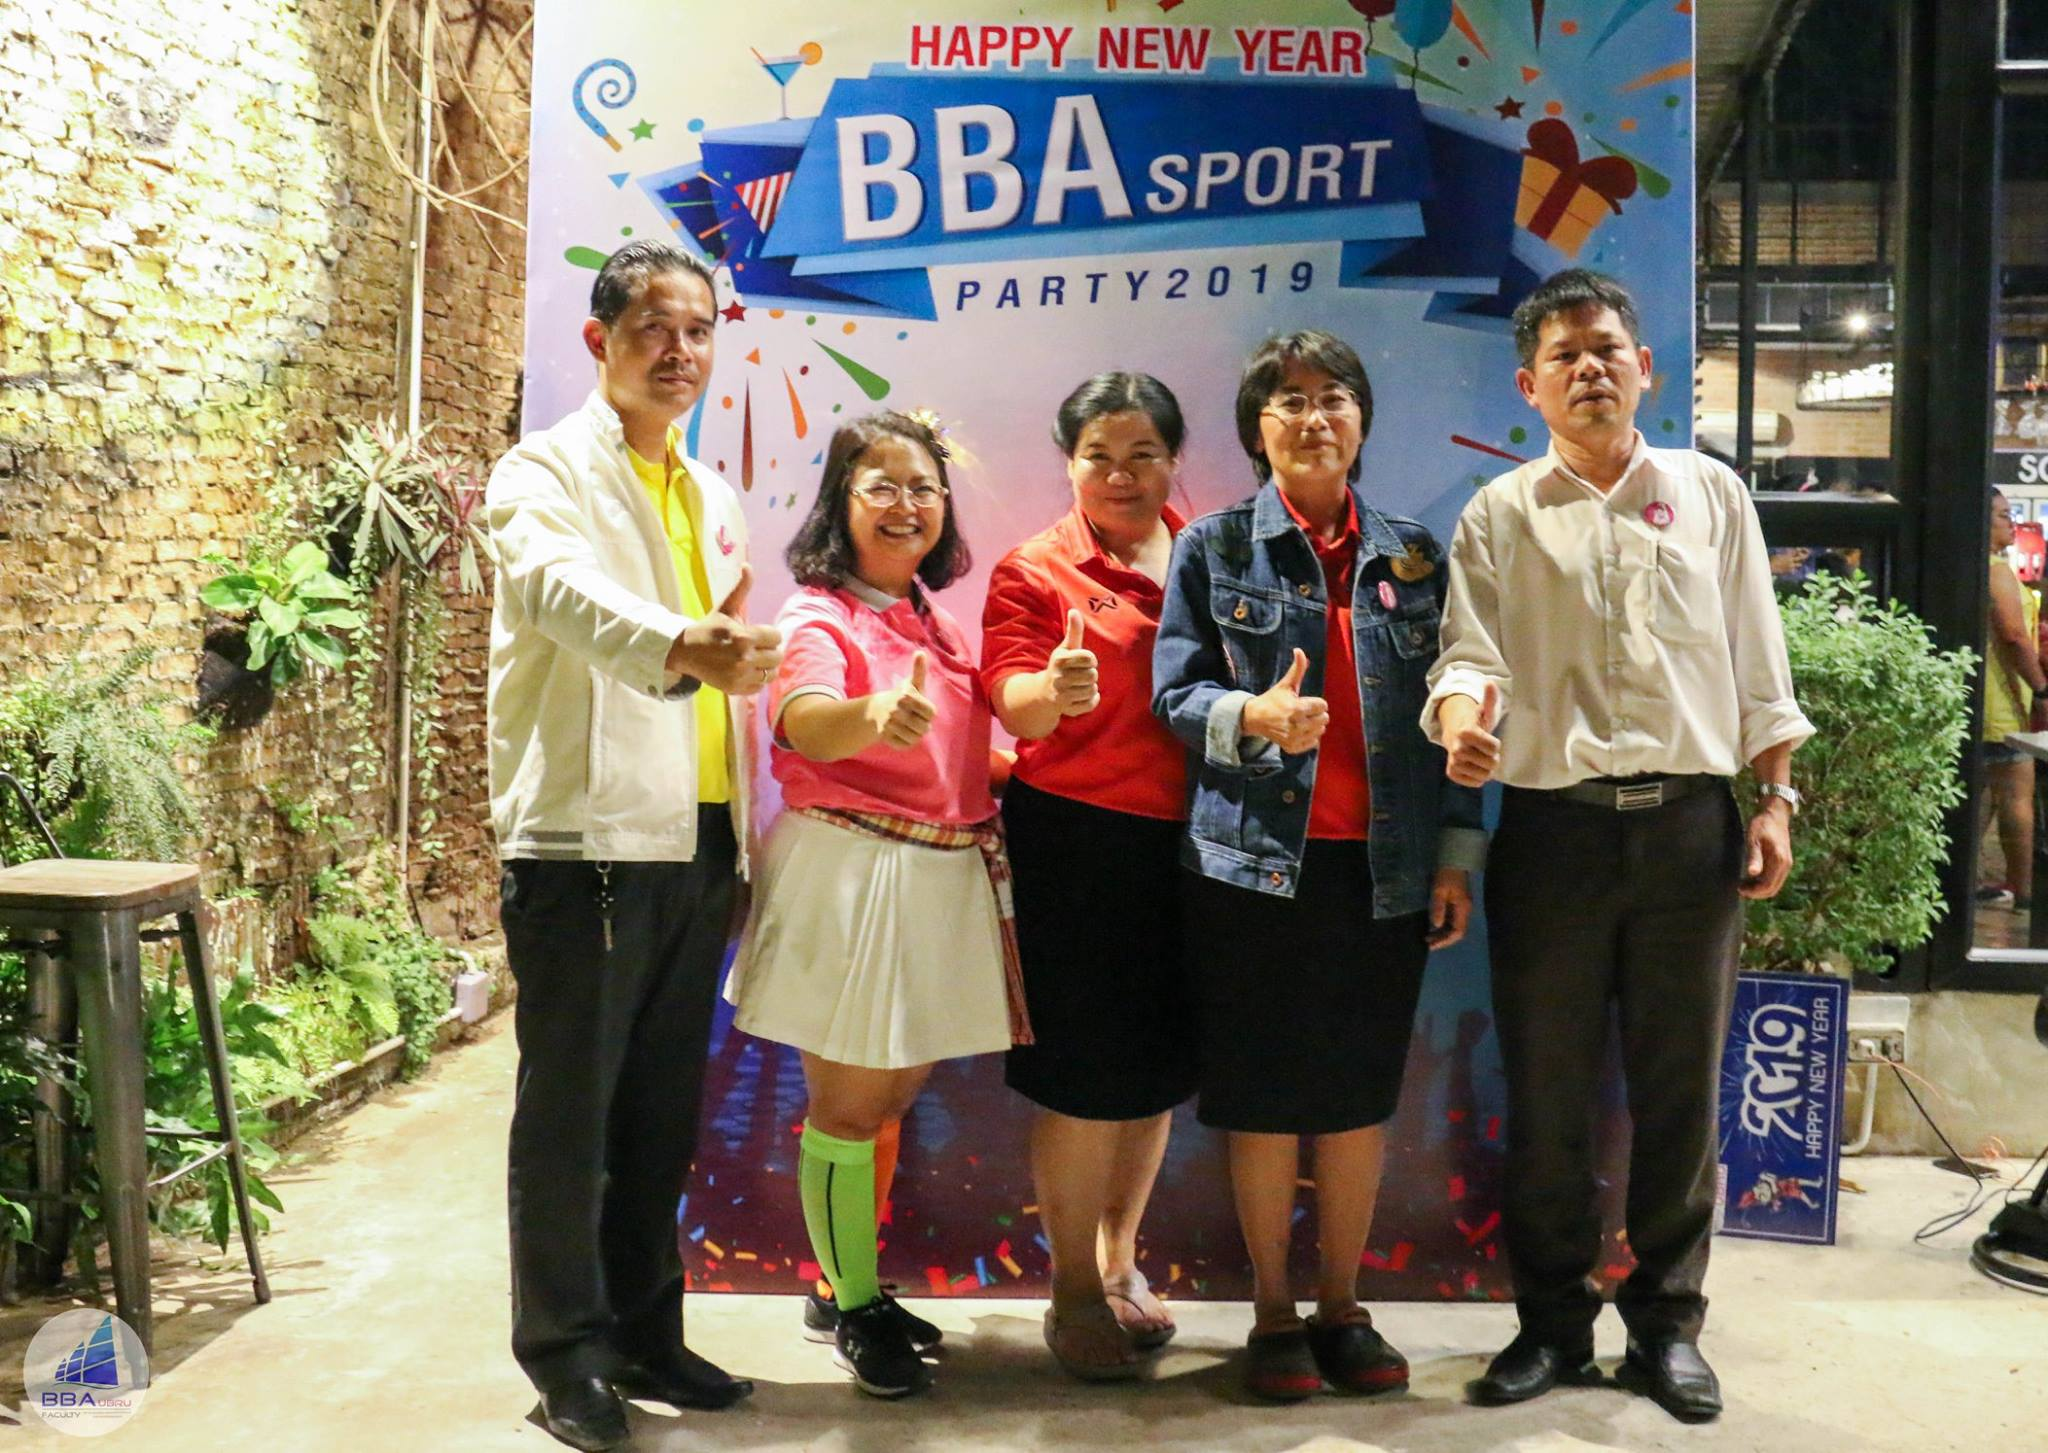 BBA Sport party 2019